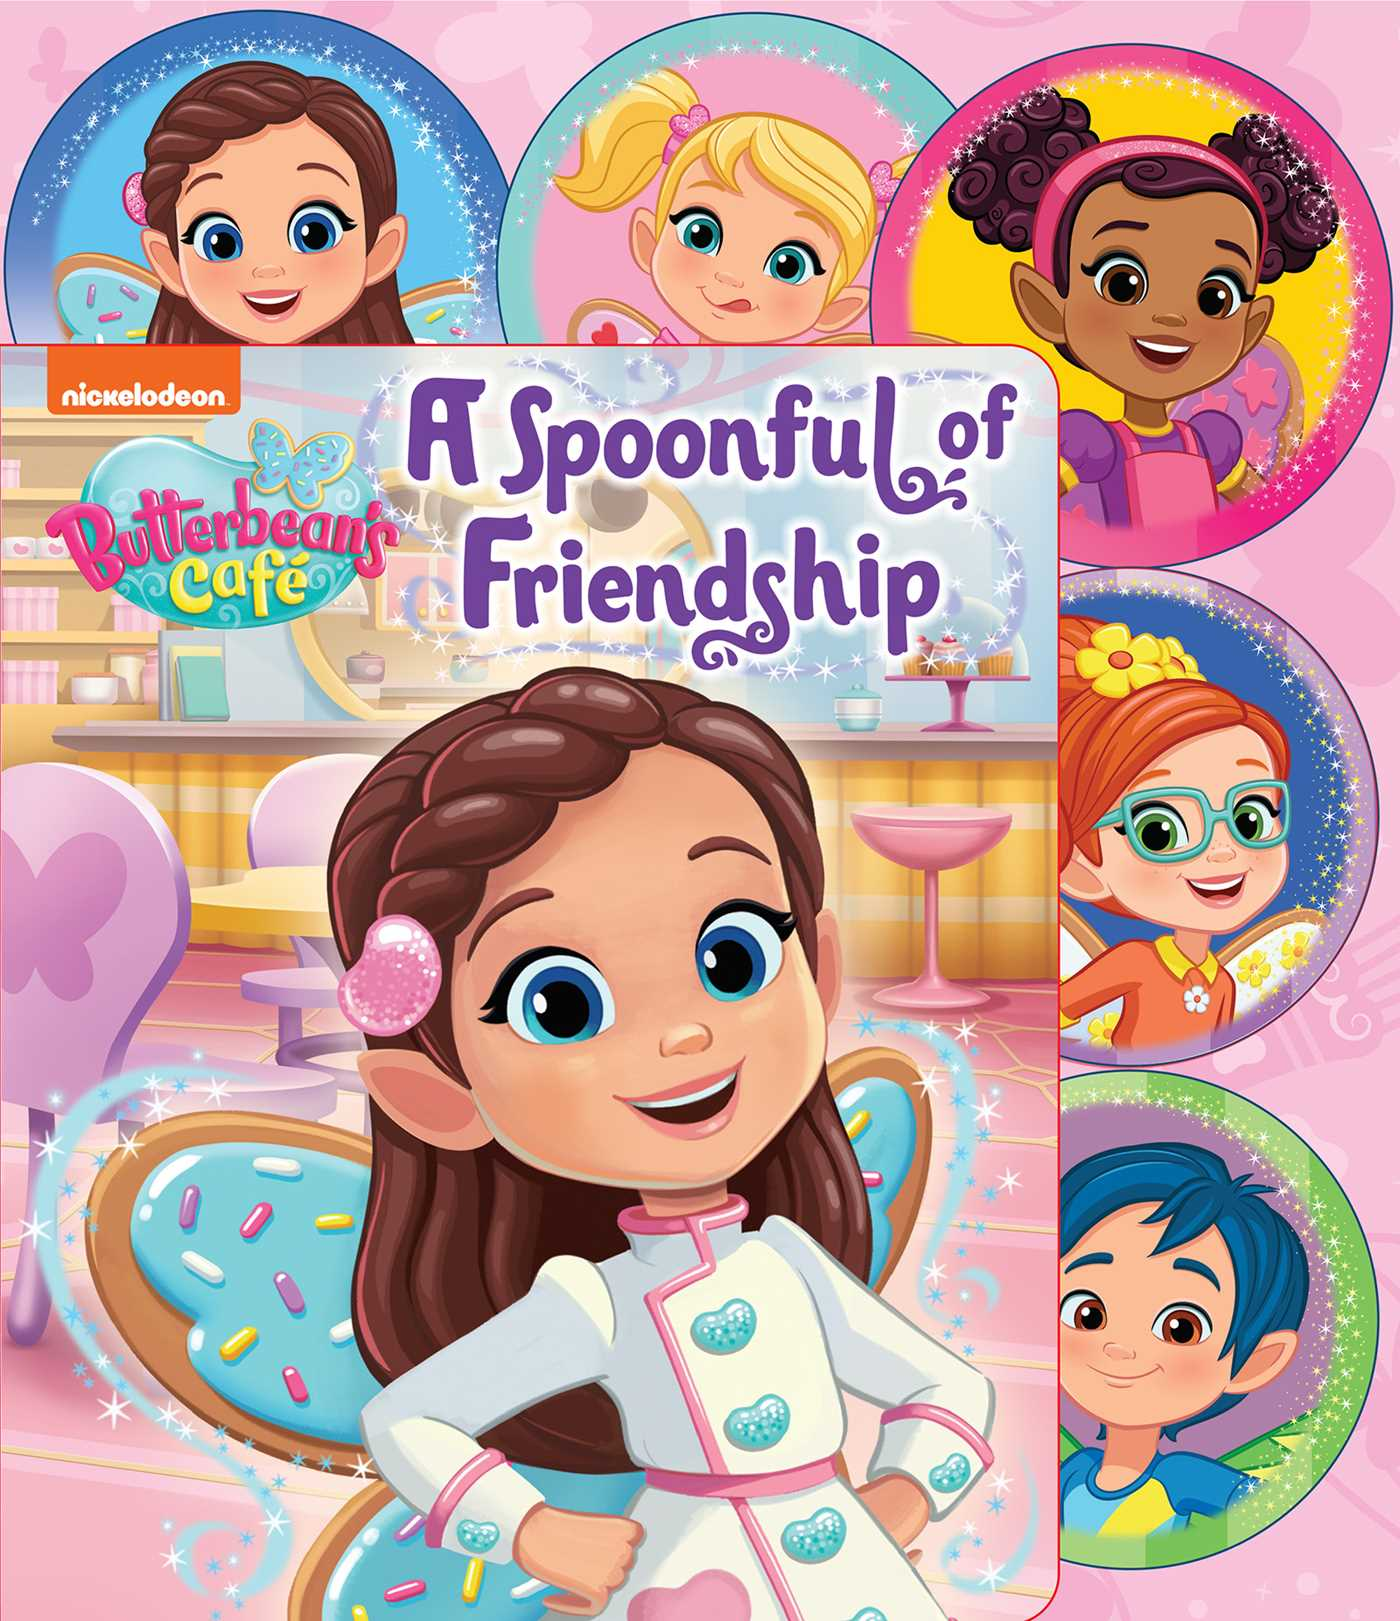 Nickelodeon Butterbean S Cafe A Spoonful Of Friendship Book By Courtney Acampora Mike Jackson Official Publisher Page Simon Schuster